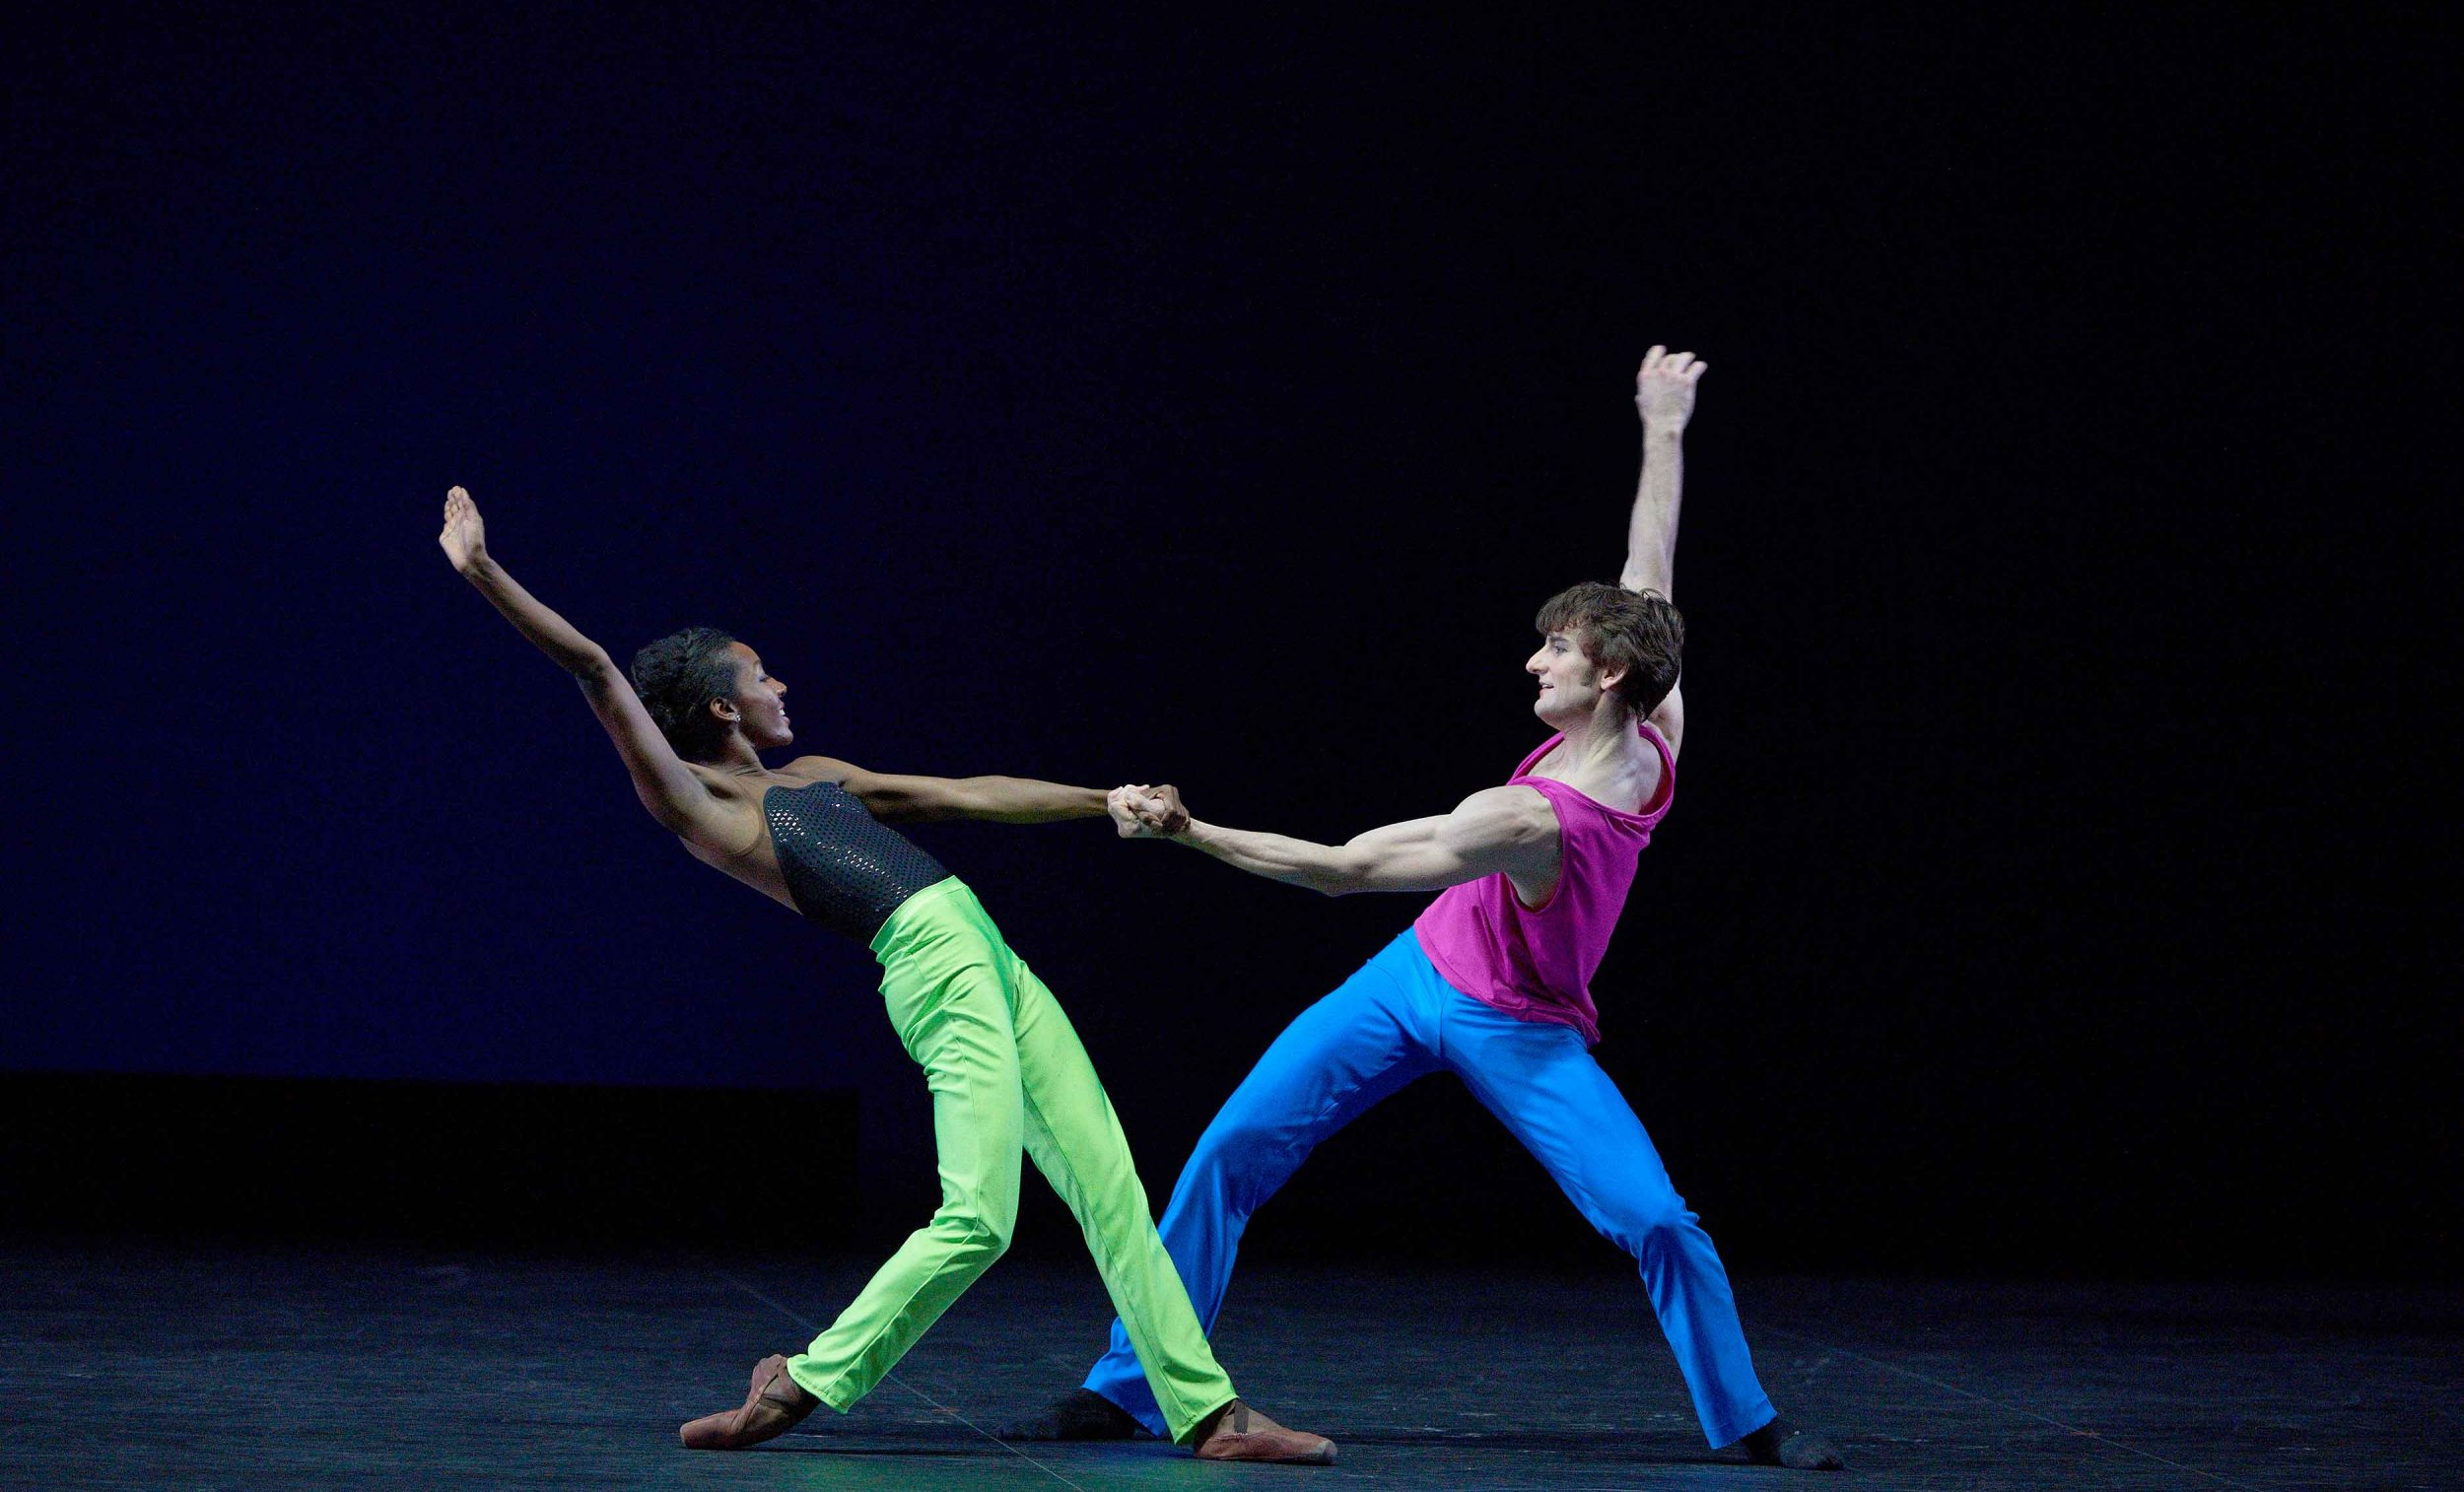 Precious-Adams-and-Aaron-Robison-in-Approximate-Sonata-2016-by-William-Forsythe3